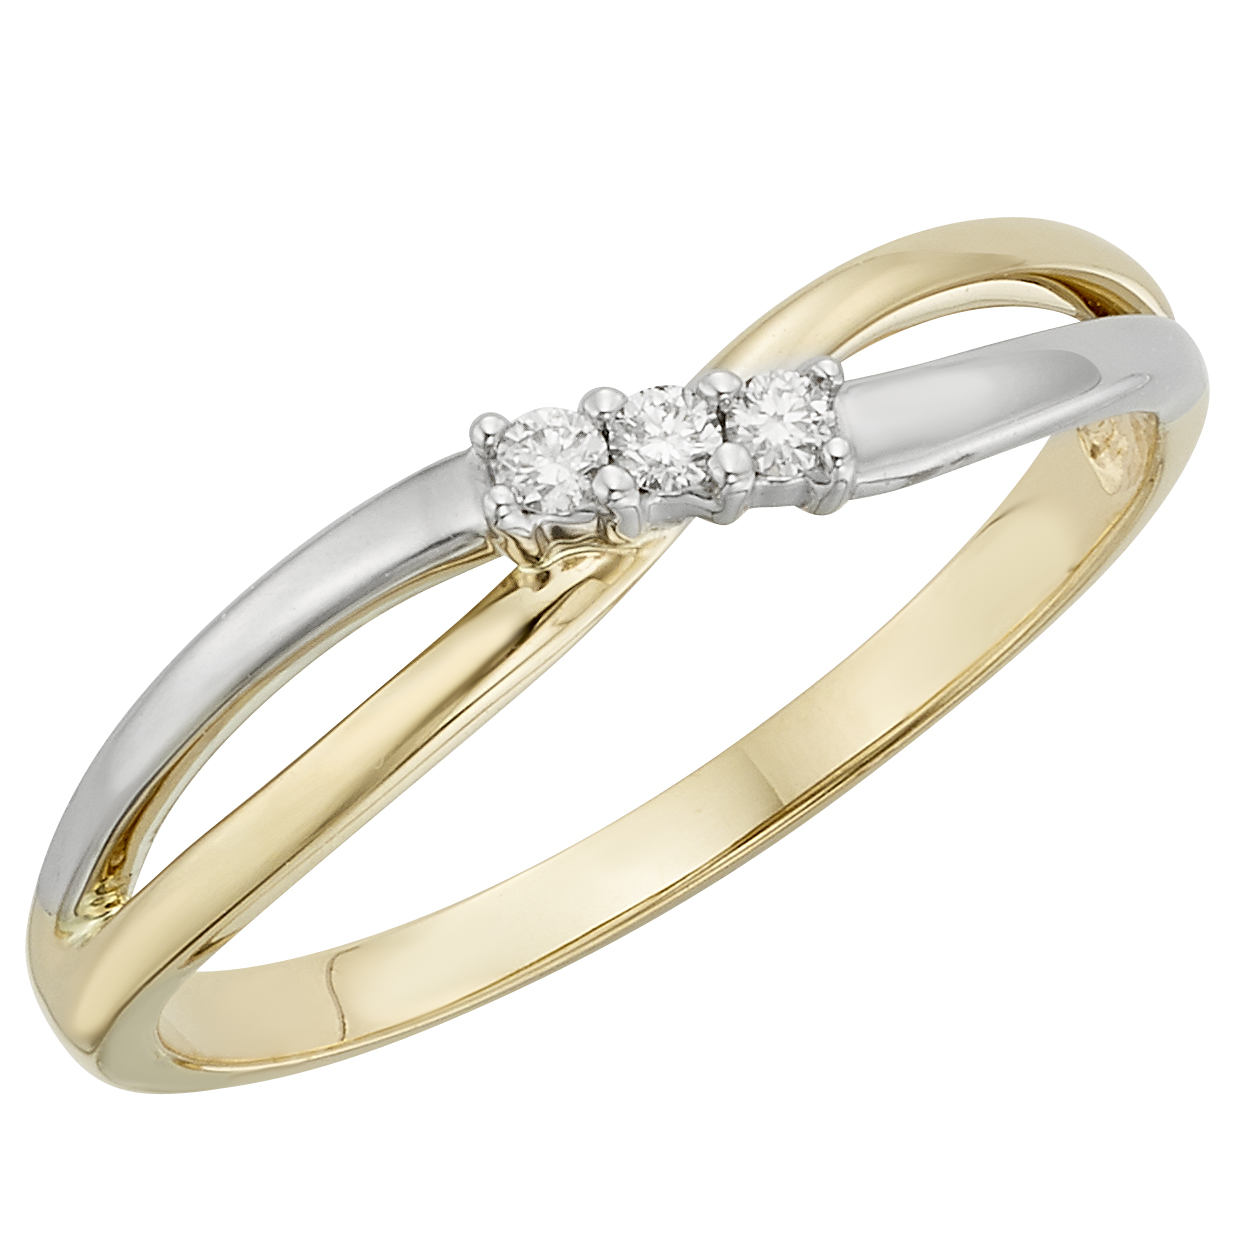 White Gold and Yellow Gold Diamond StackingRing